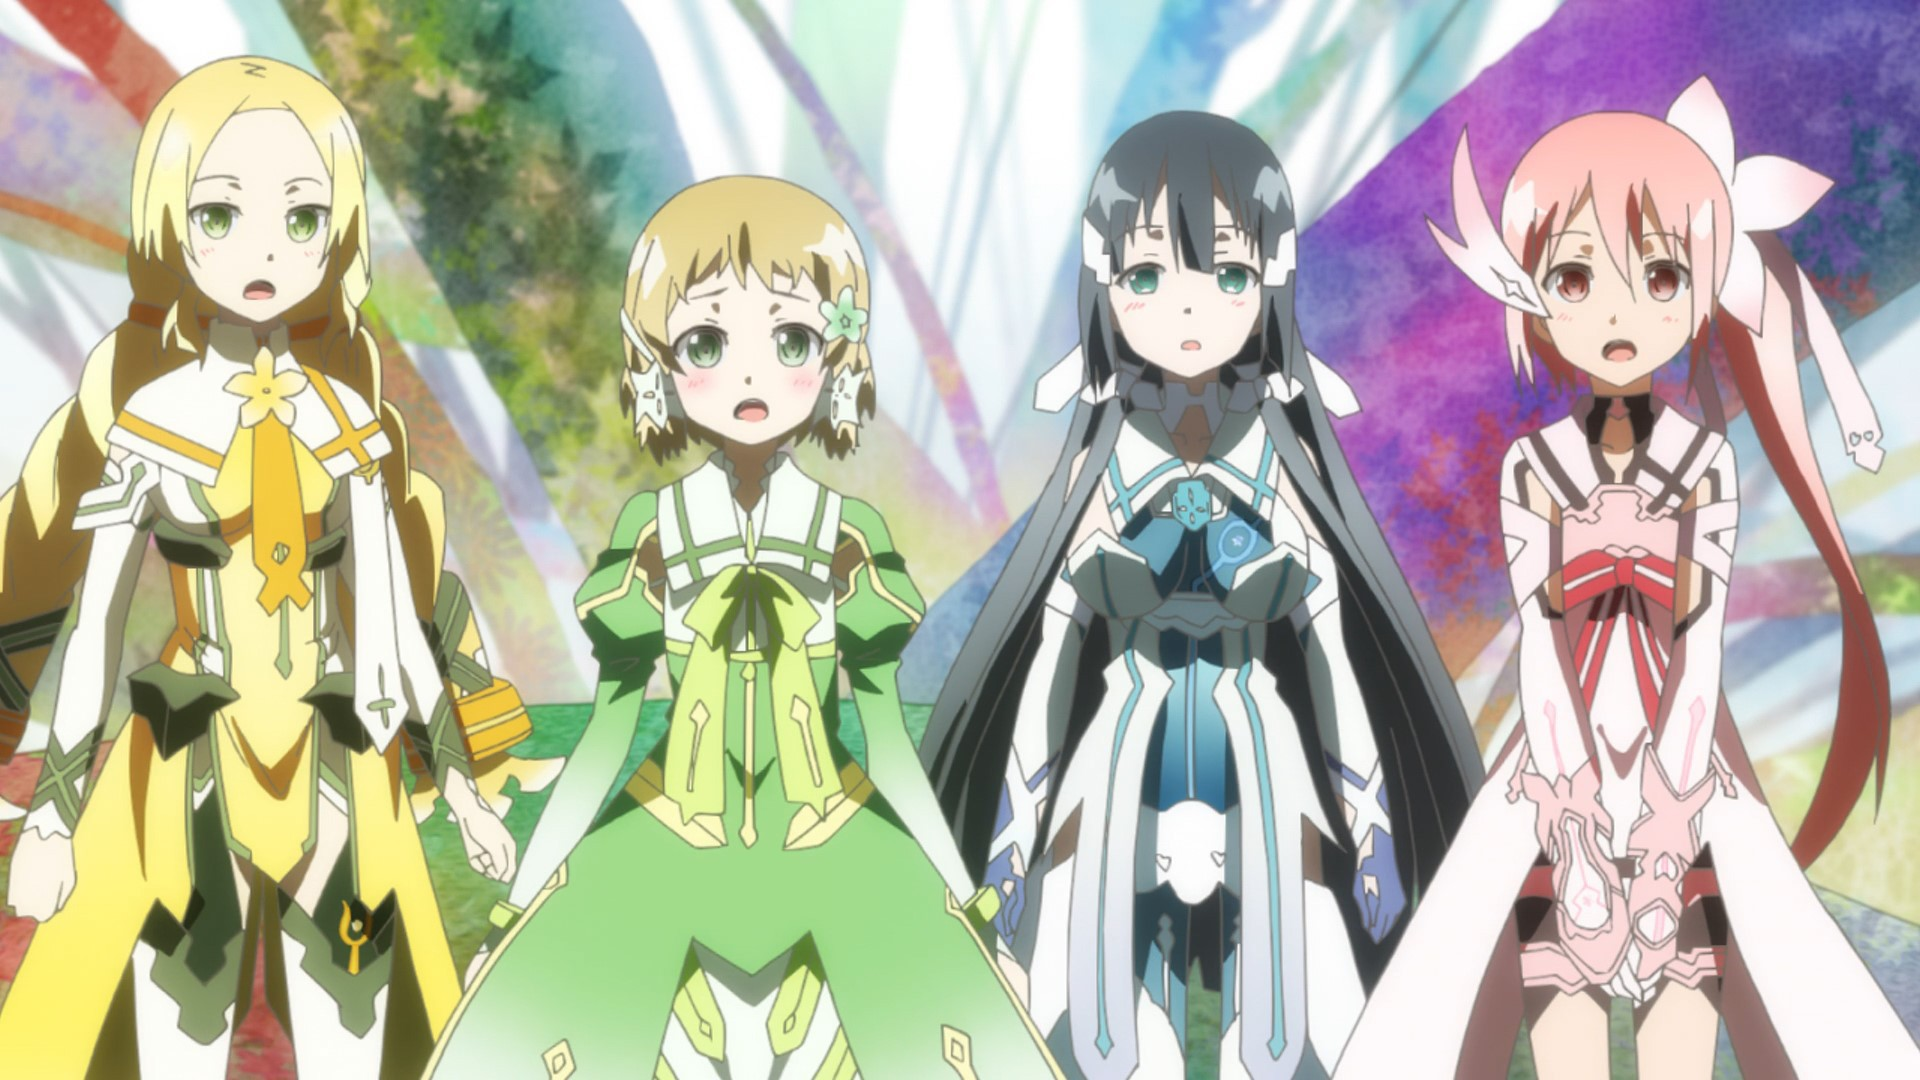 The core cast of Yuki Yuna in their magical girl costumes; they are floral, pastel, and cute, and the characters are looking at something offscreen in shock and awe